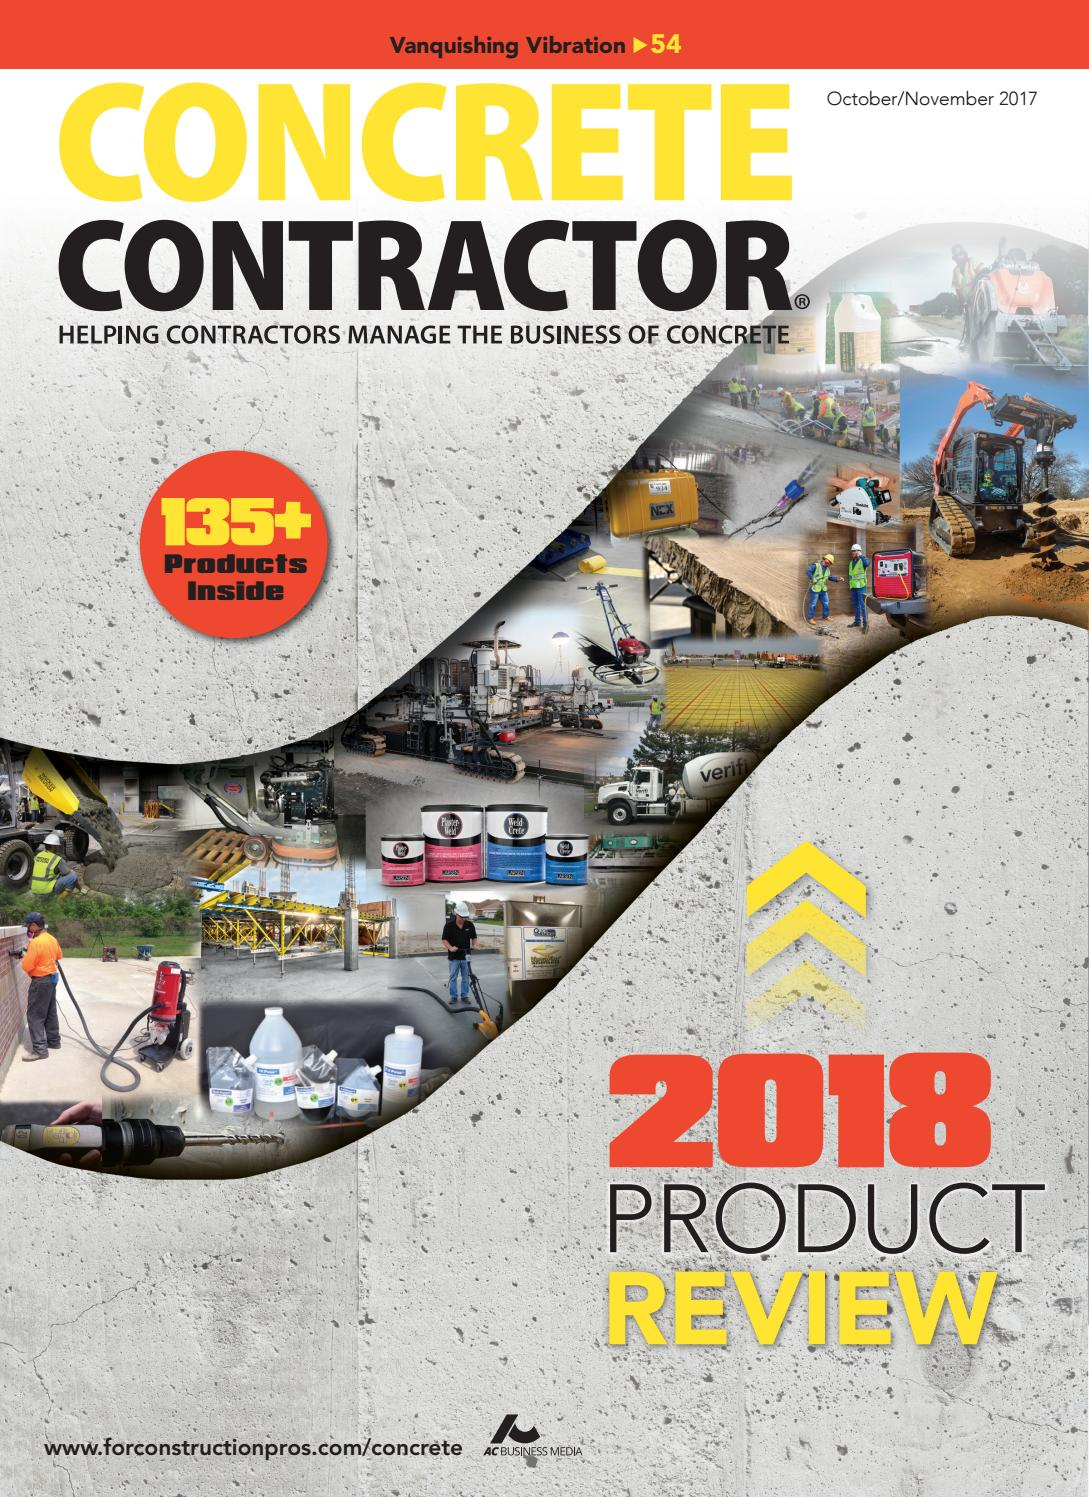 Concrete Contractor October/November 2017 by ForConstructionPros.com - issuu